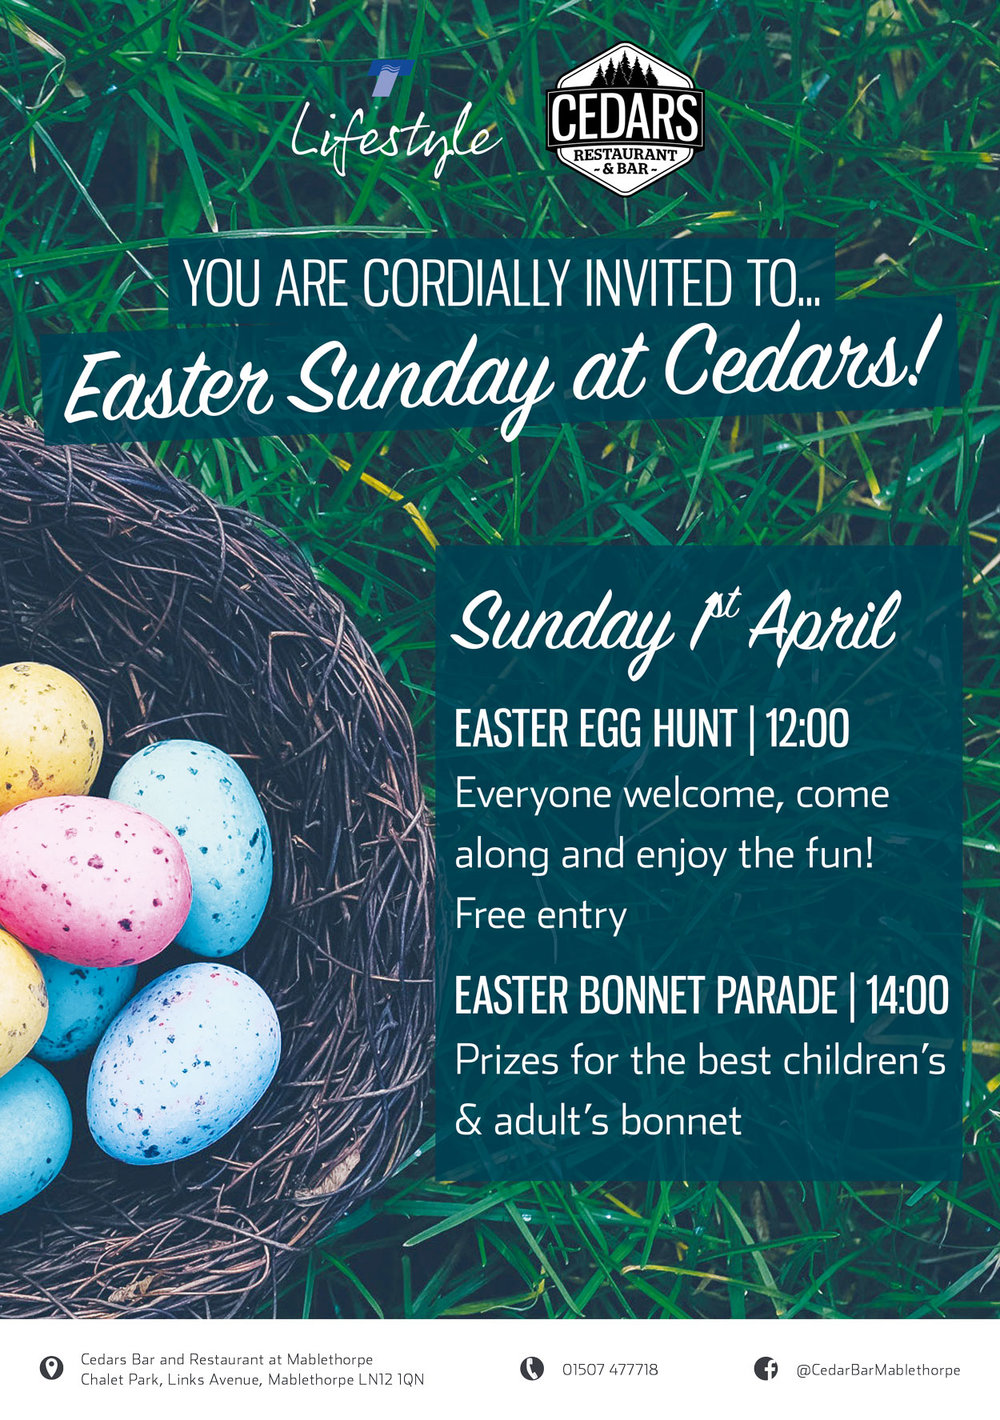 Easter Sunday at Cedars Bar & Restaurant, Mablethorpe Chalet Park - click to enlarge!